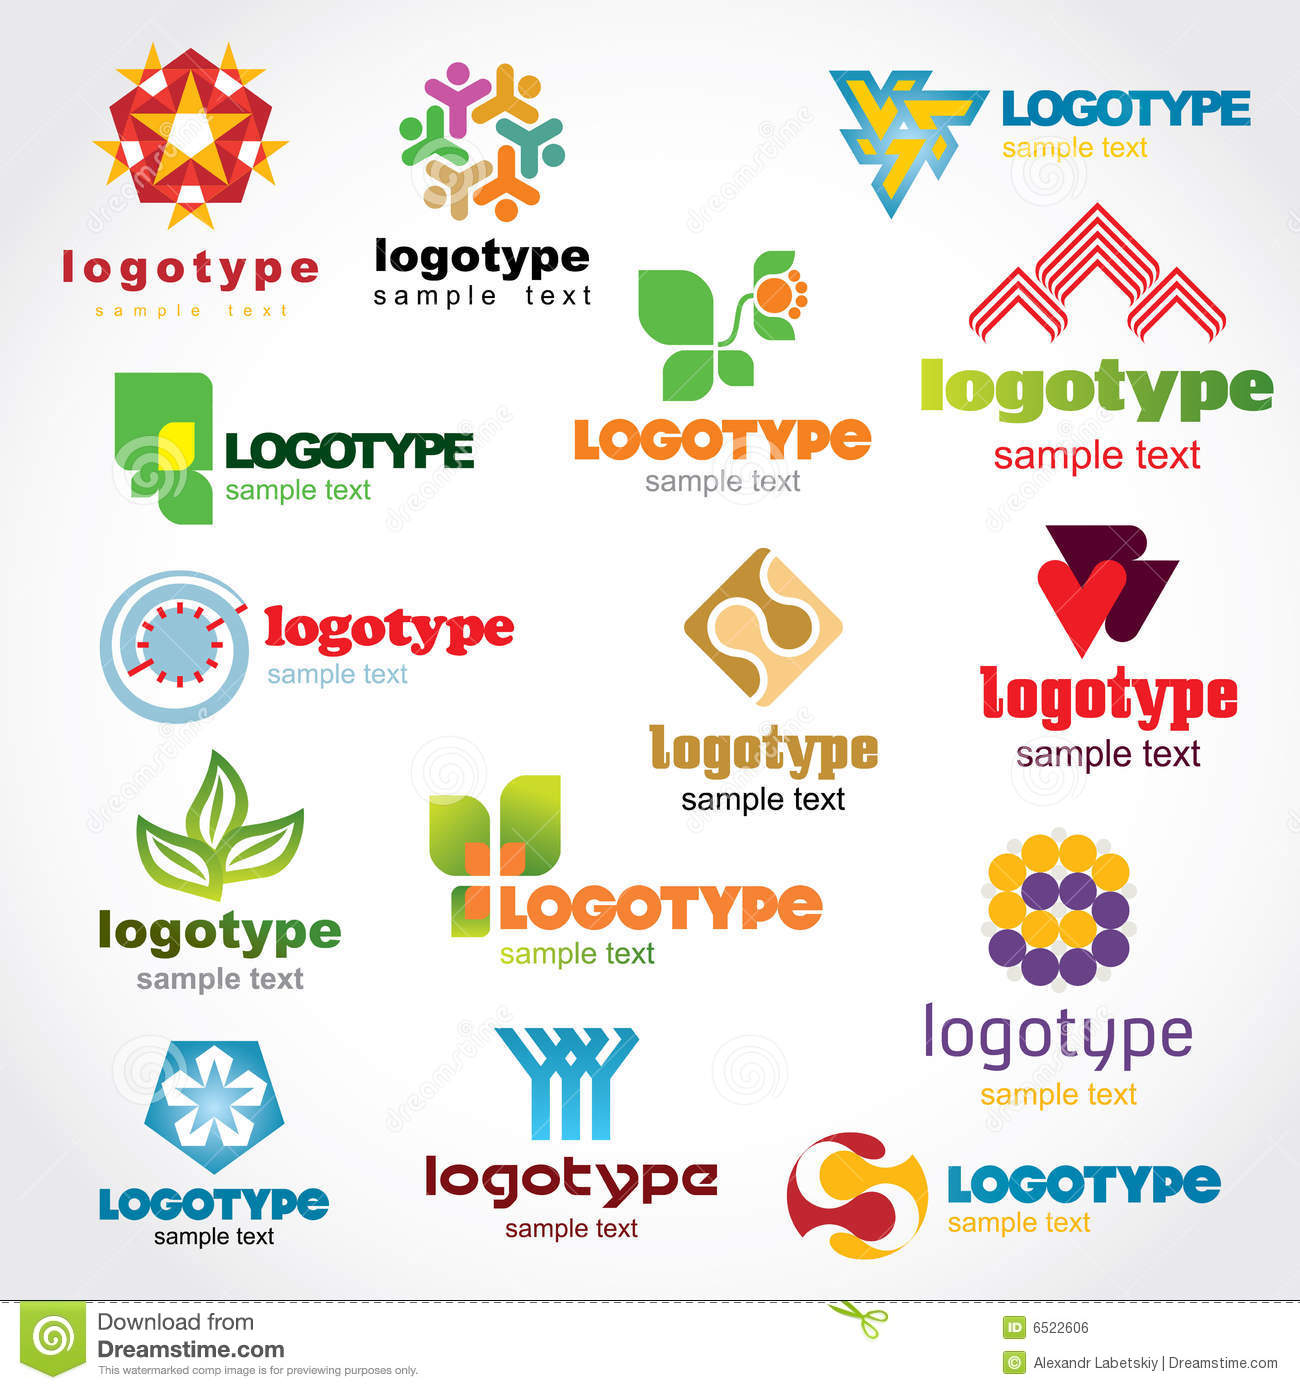 logos and taglines distinctions in marketing essay